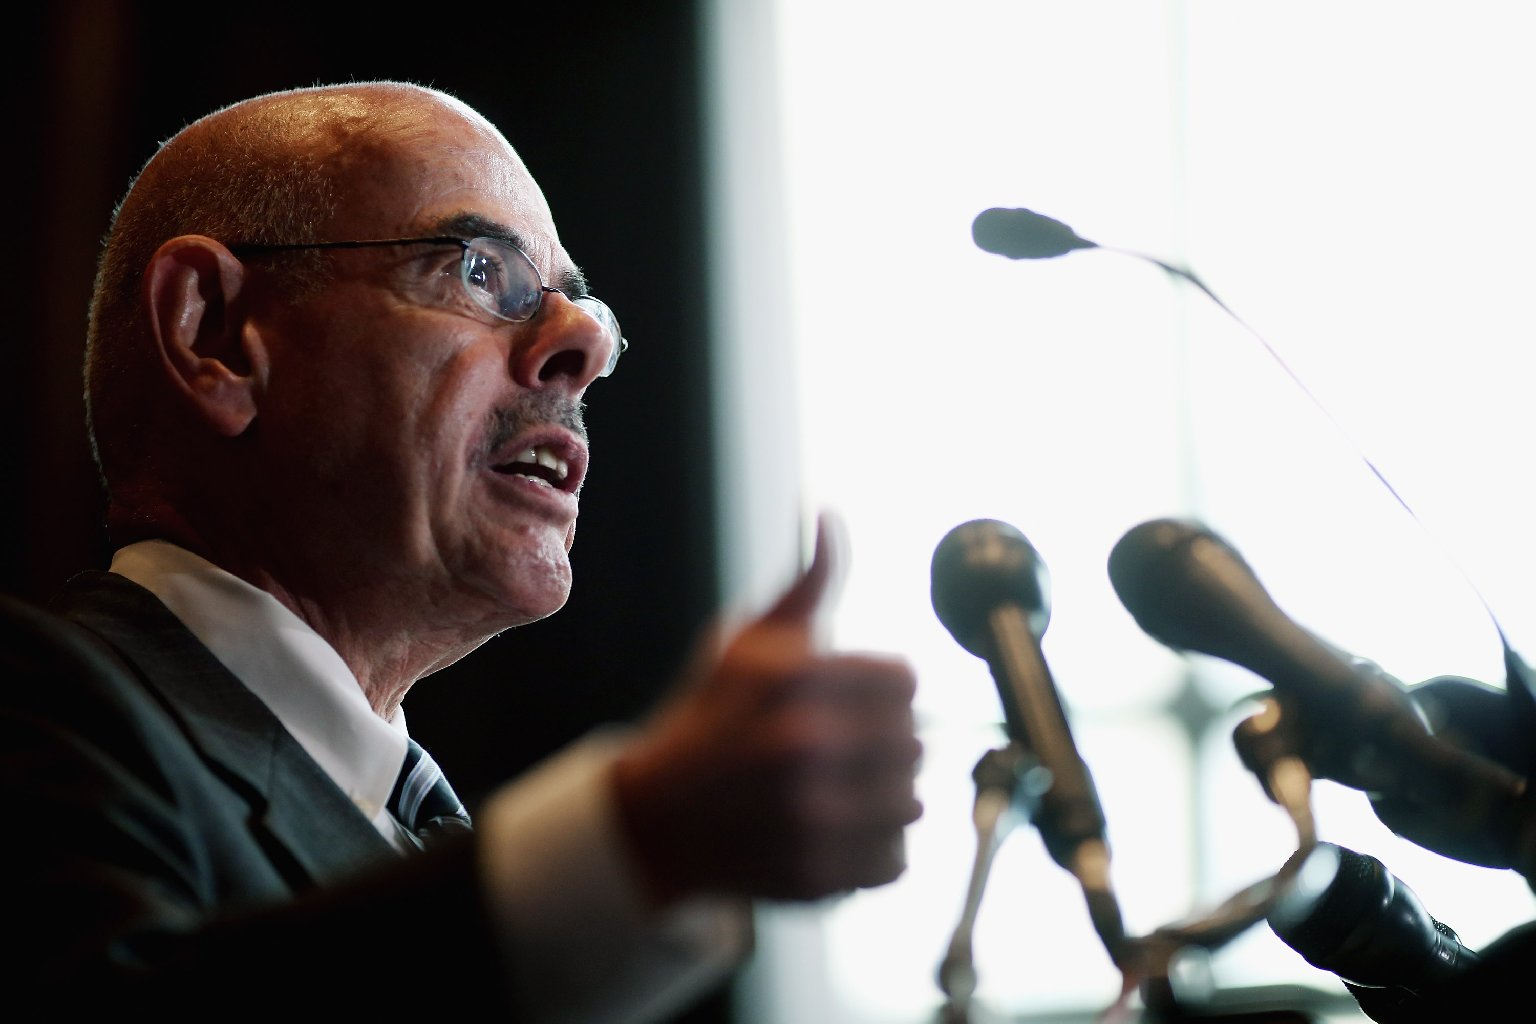 Rep. Henry Waxman, Liberal Democrat from Los Angeles, to Retire from Congress